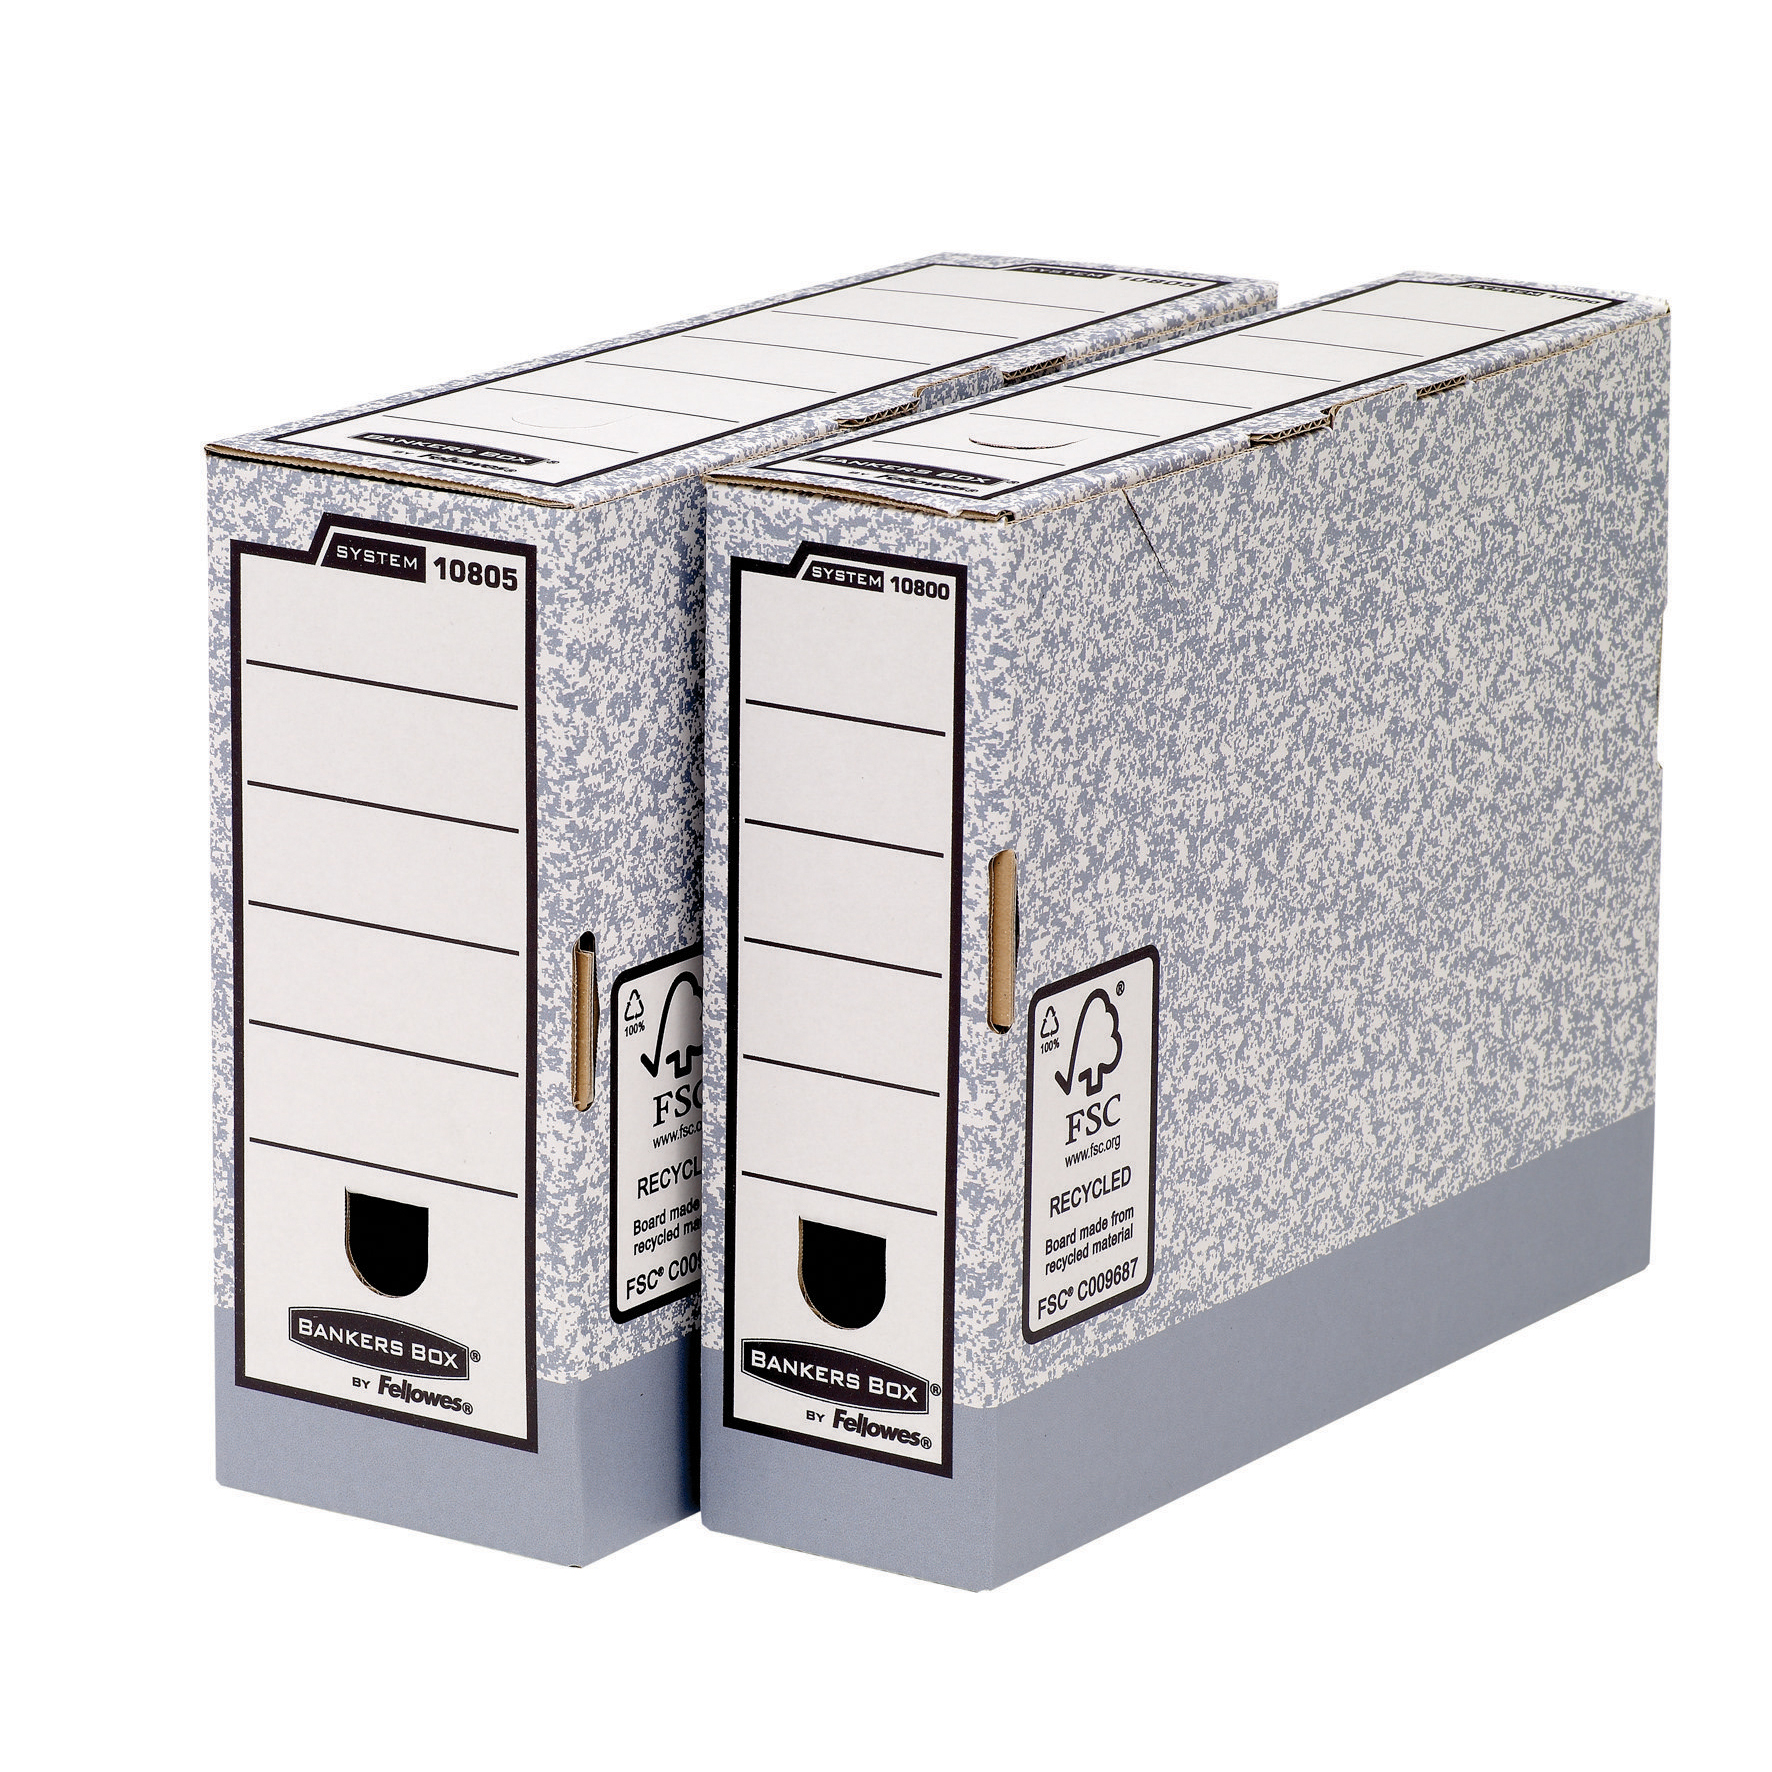 Storage Boxes Fellowes Bankers Box Transfer File 80mm Grey/White Ref 1180001 Pack 10